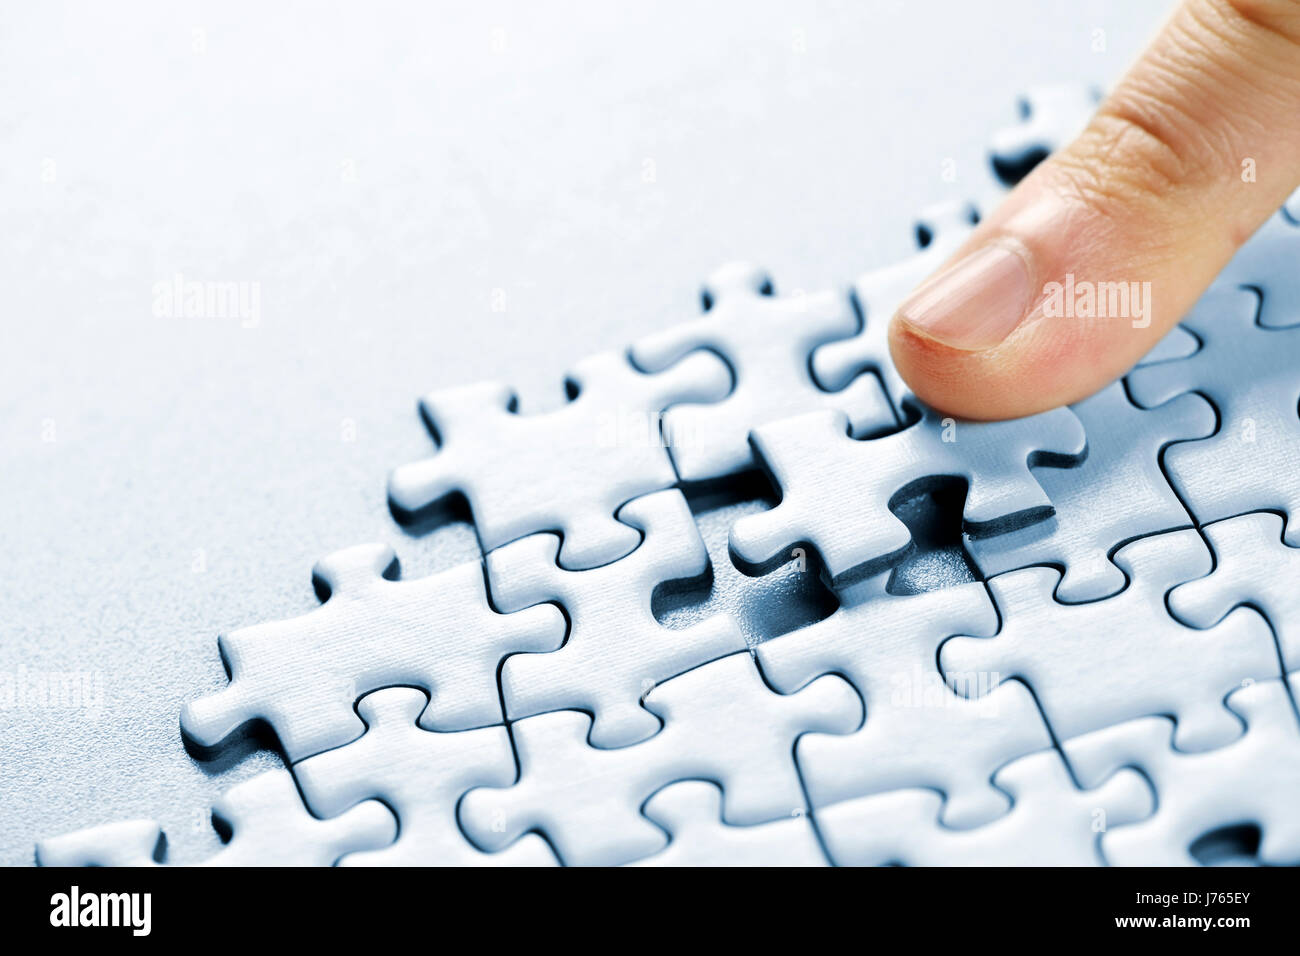 finger missing jigsaw puzzle jigsaw puzzle piece section segment